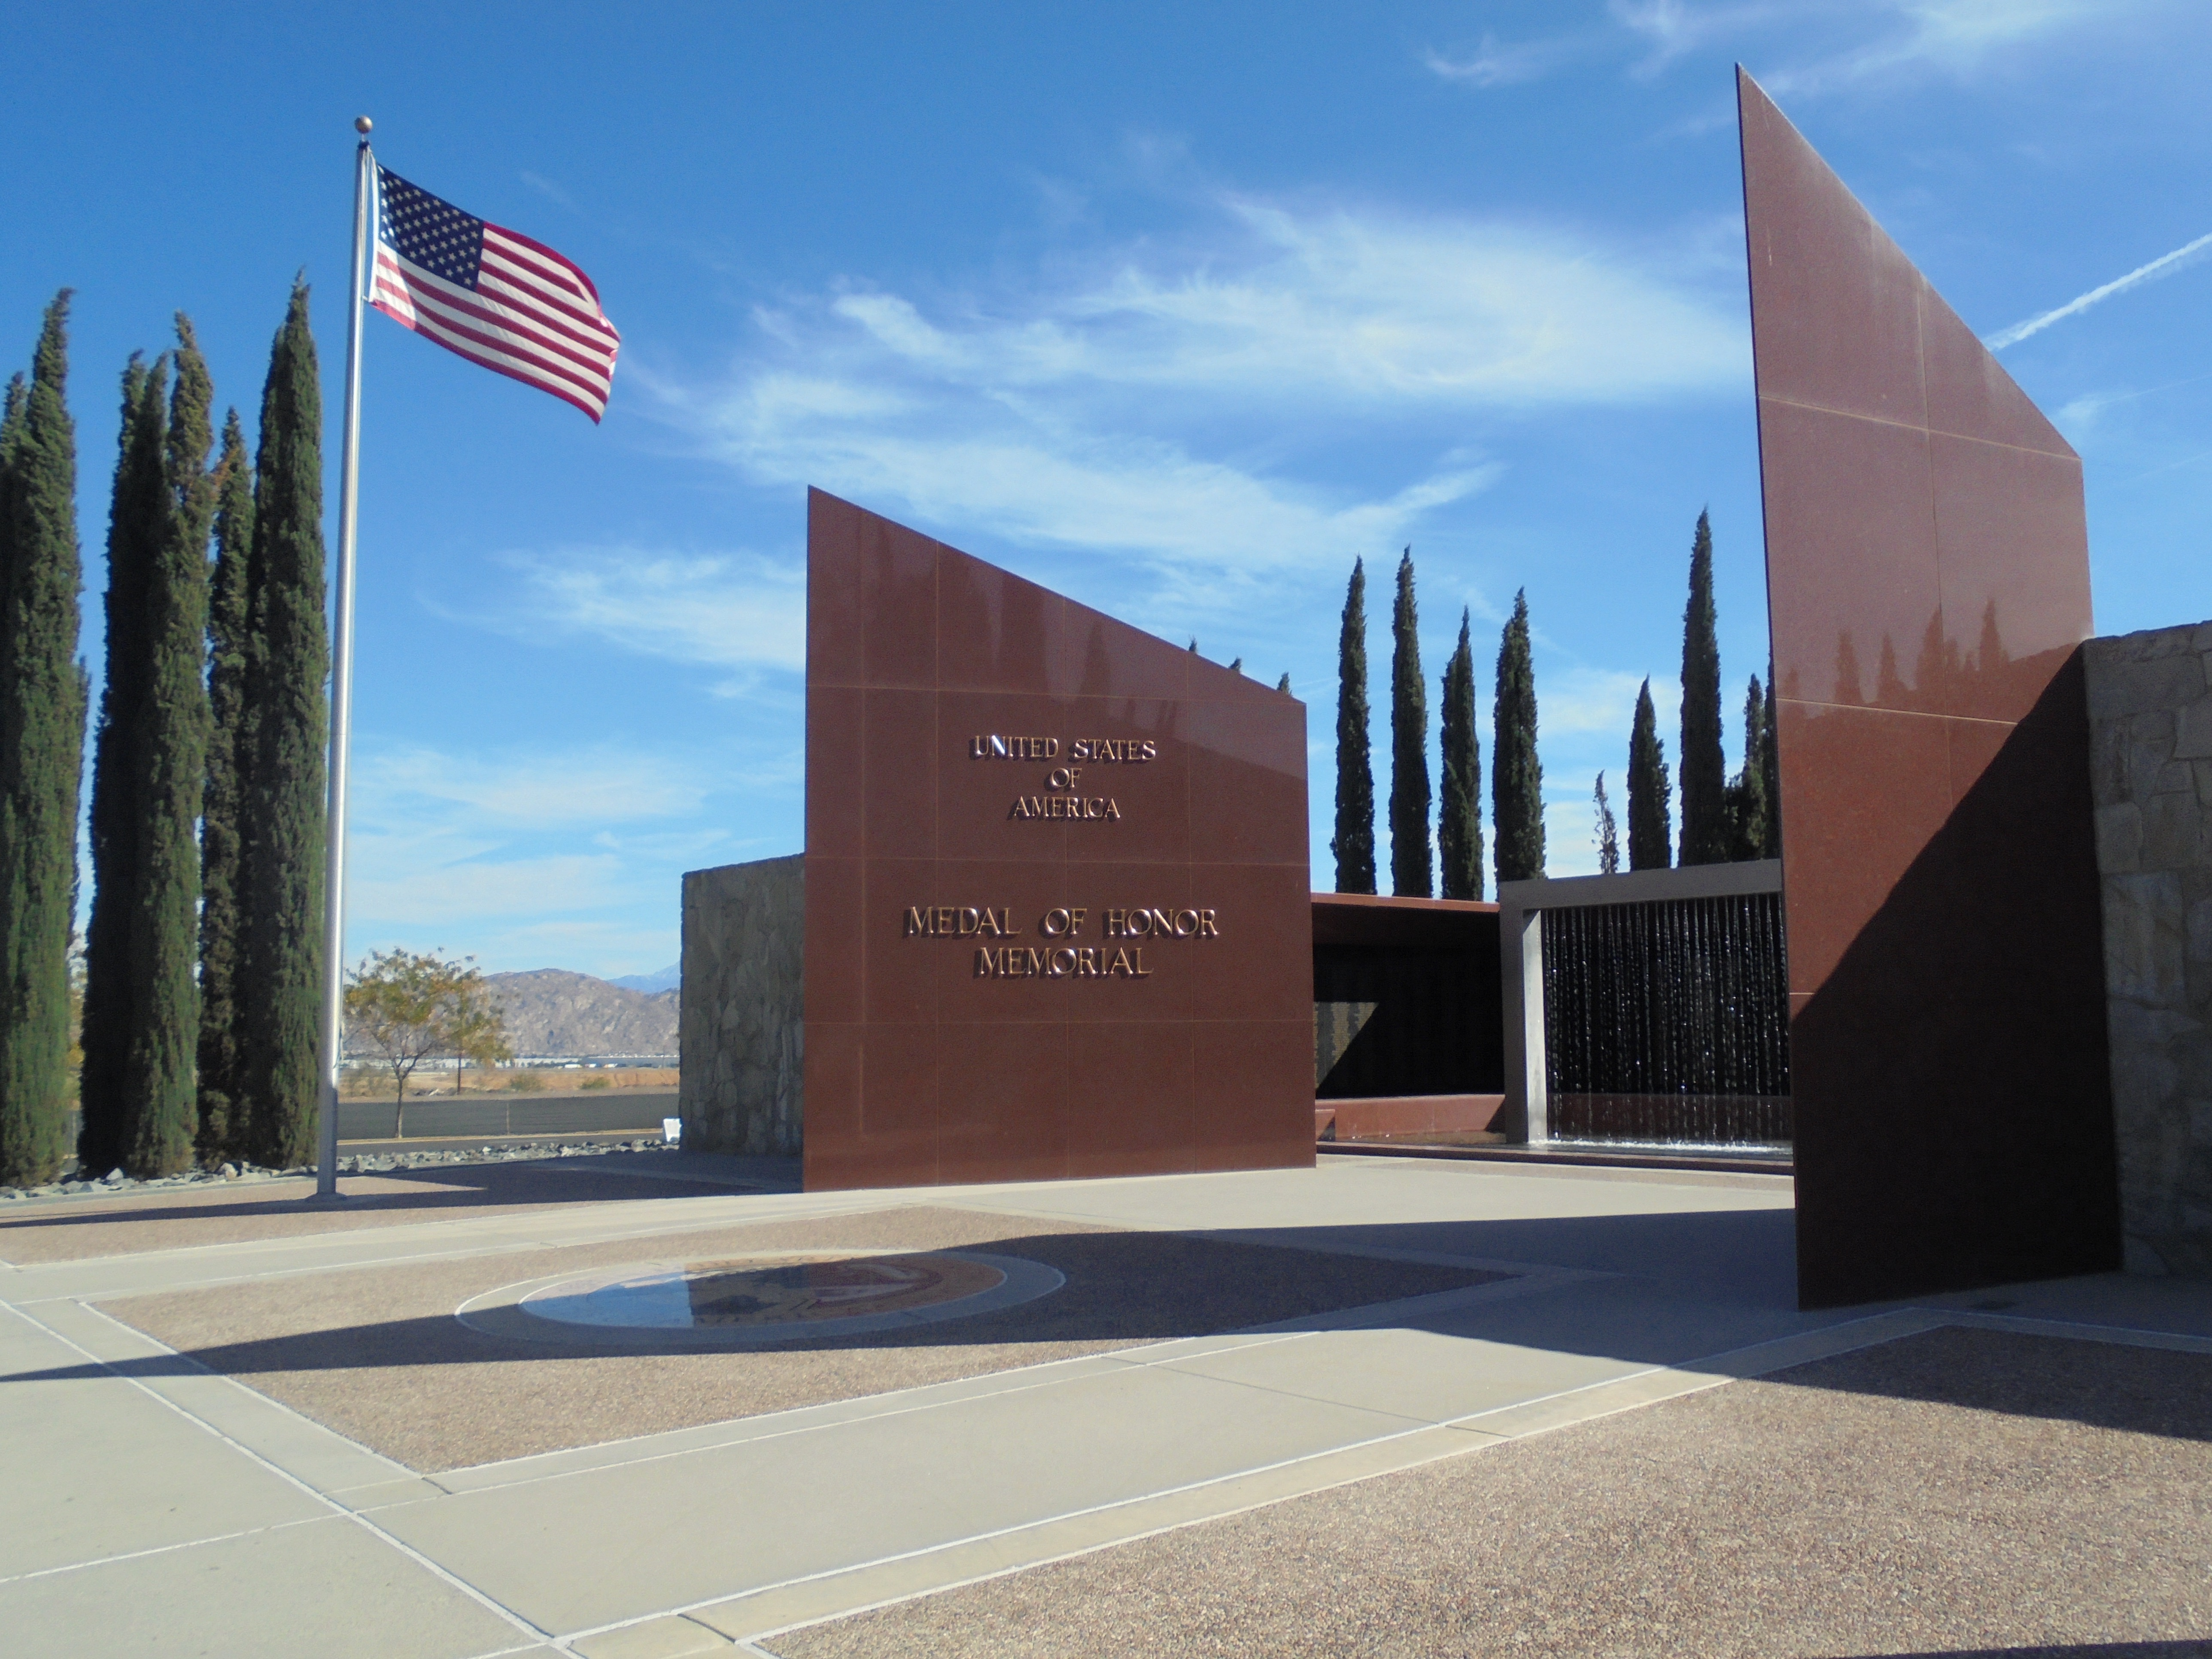 Medal of Honor Memorial, Riverside National Cemetery, Riverside, CA